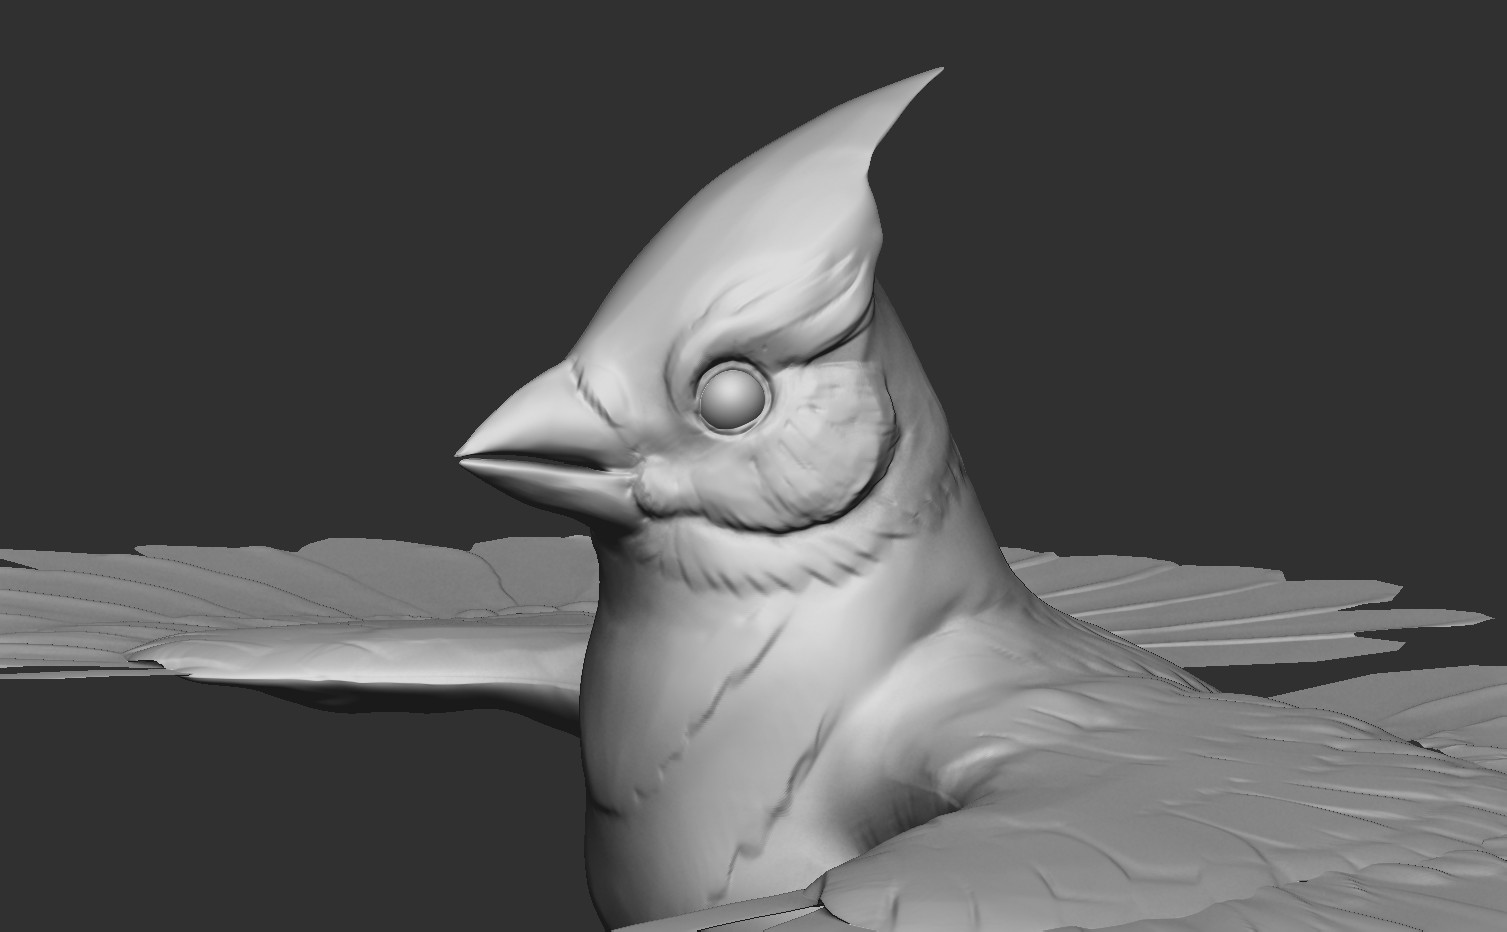 Kara netterville zbrush document 002